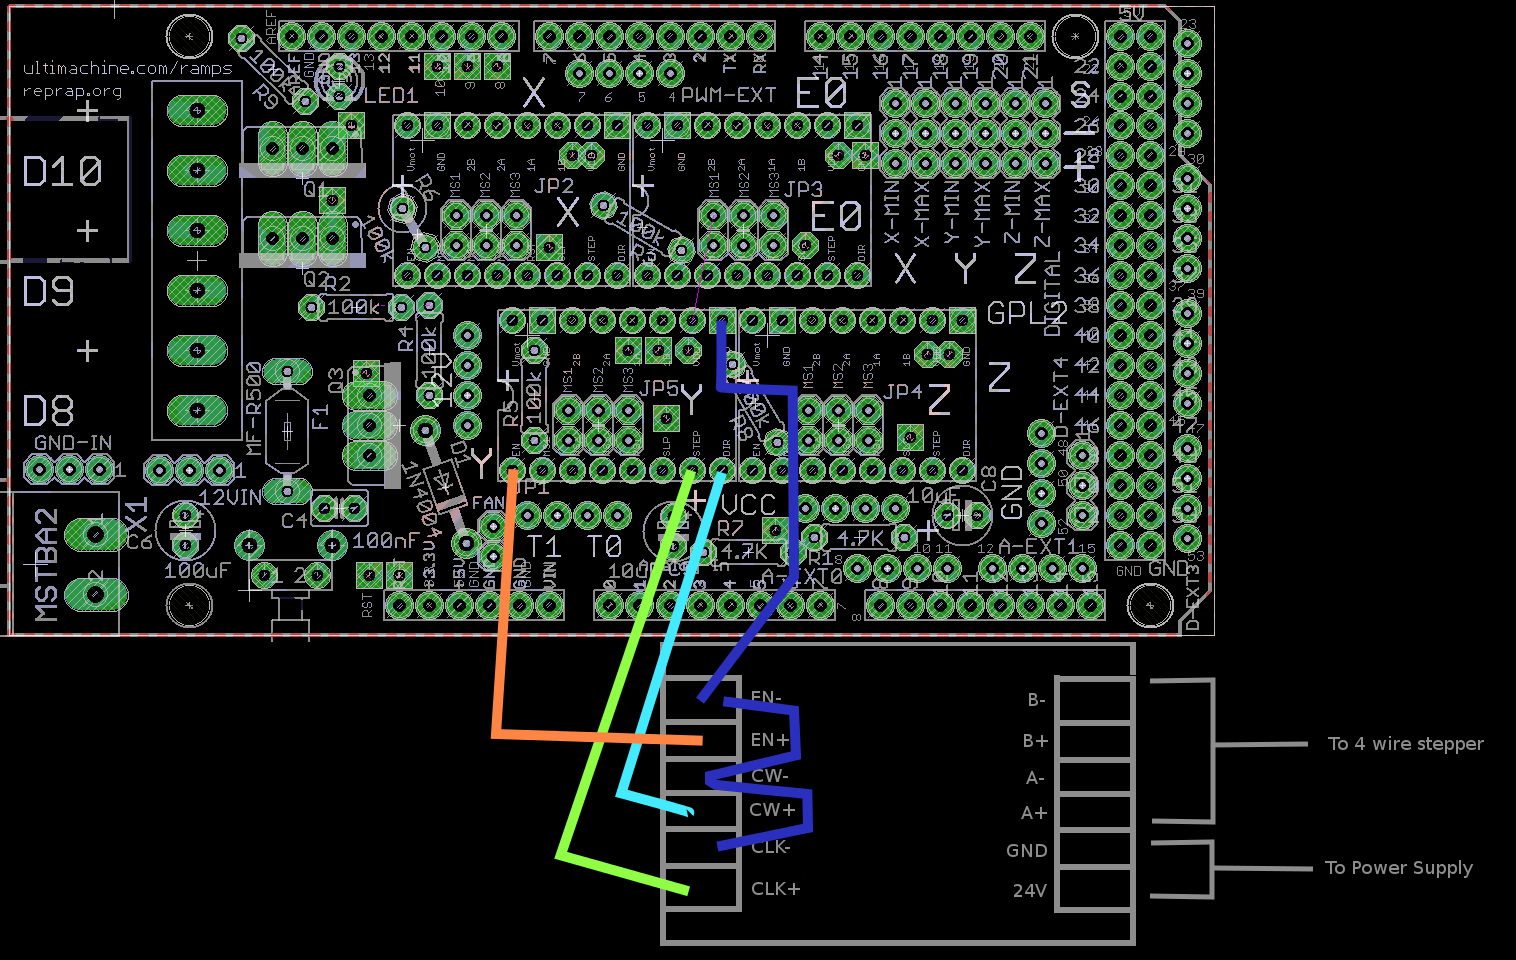 medium resolution of necessary wiring i have bashed together an example wiring diagram for replacing